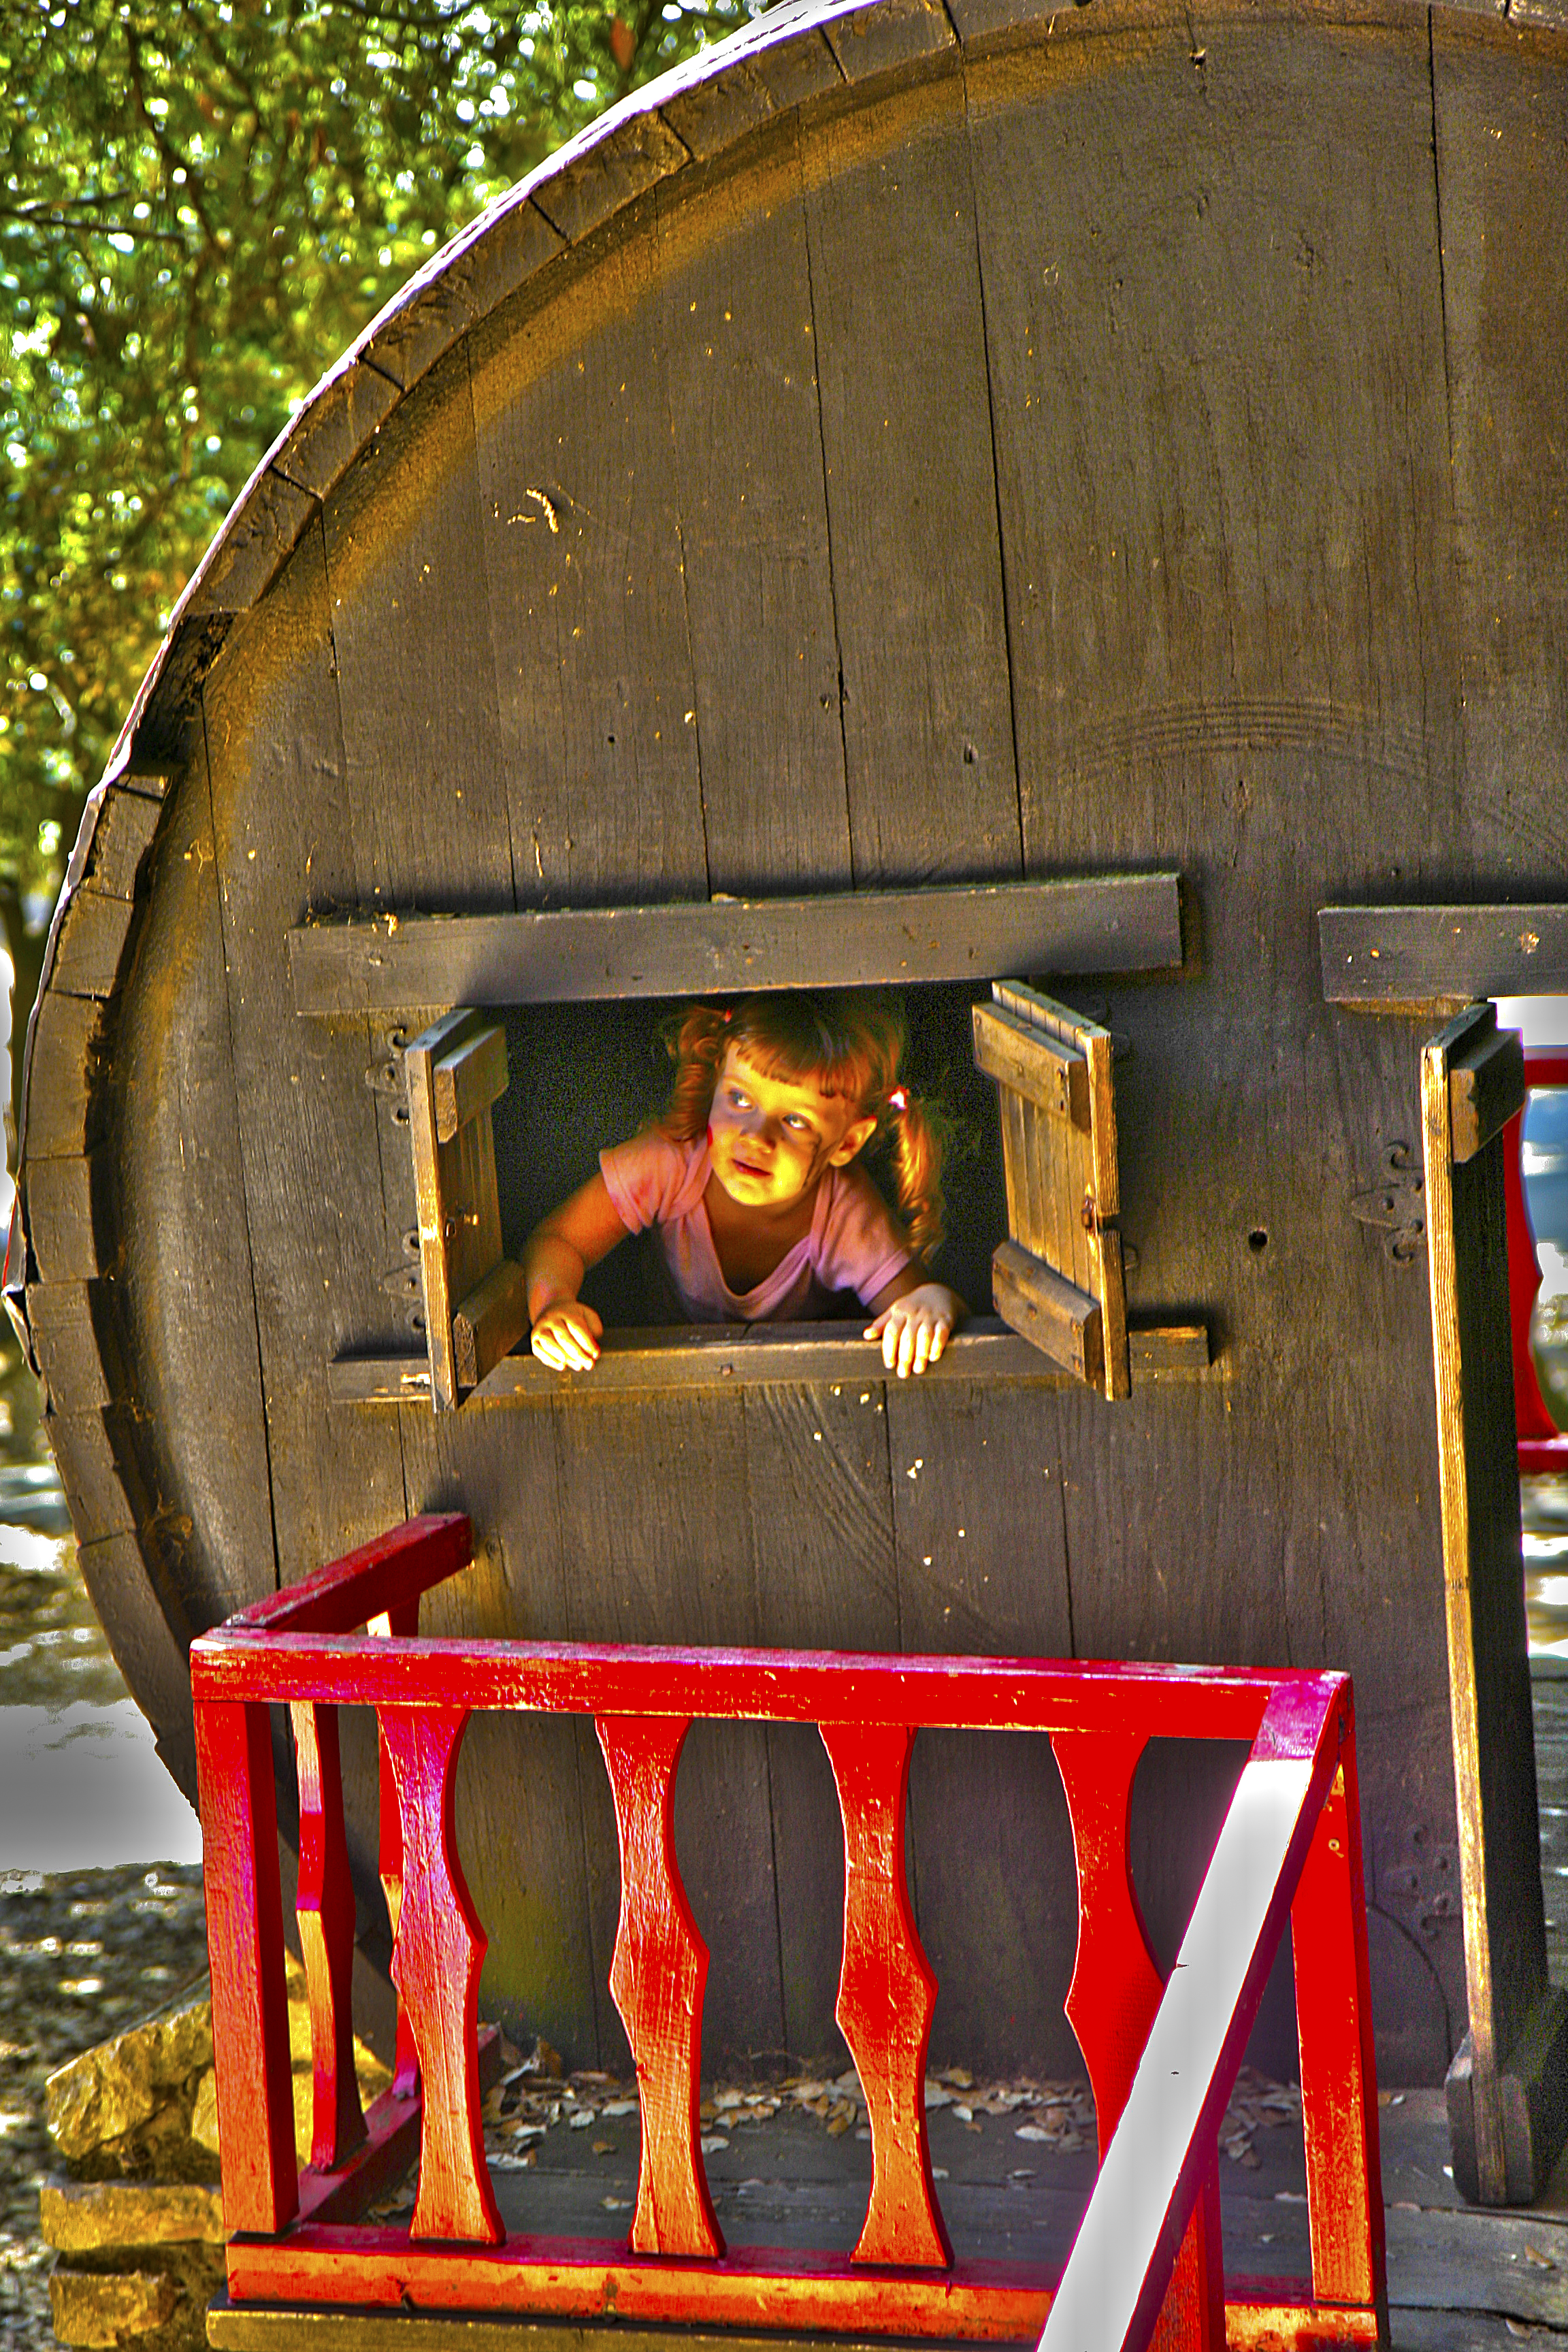 Elisa playing on a house-cask – HDR